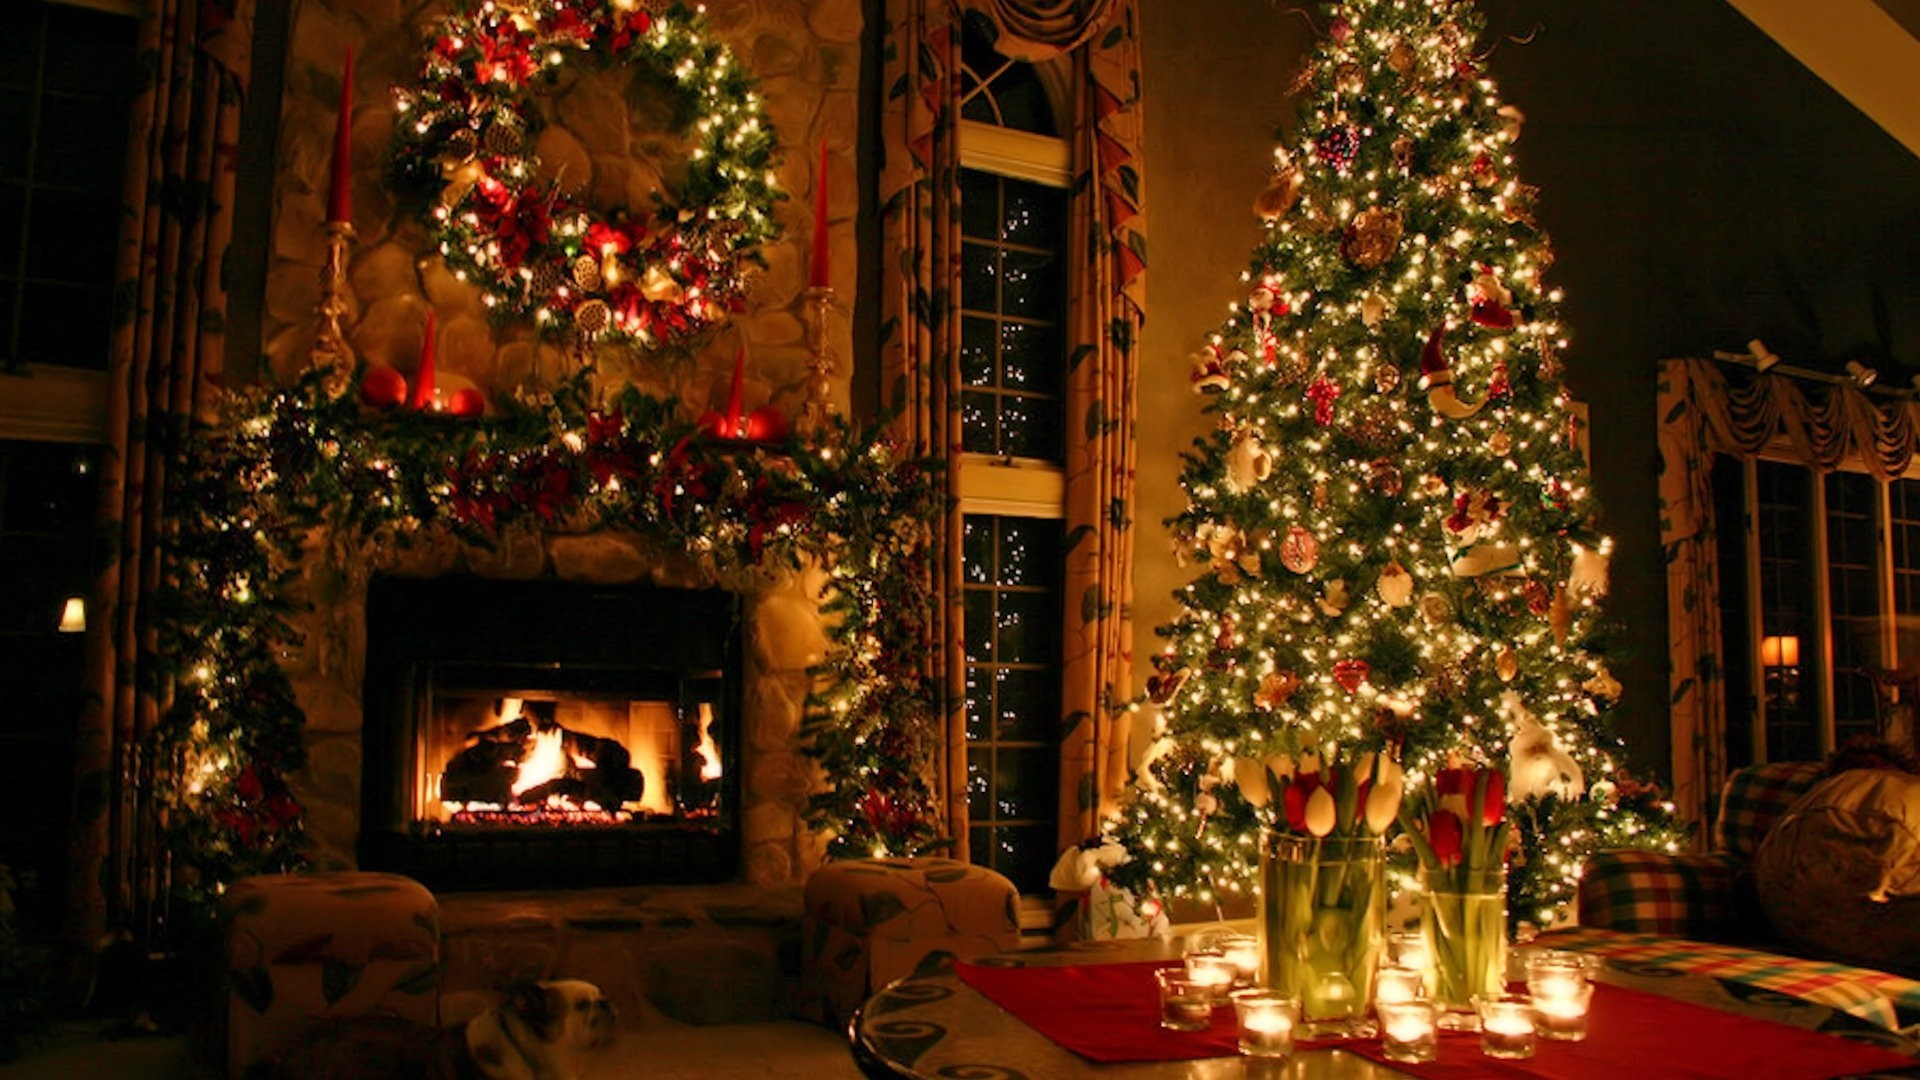 Christmas Backgrounds for Computer (58+ pictures)